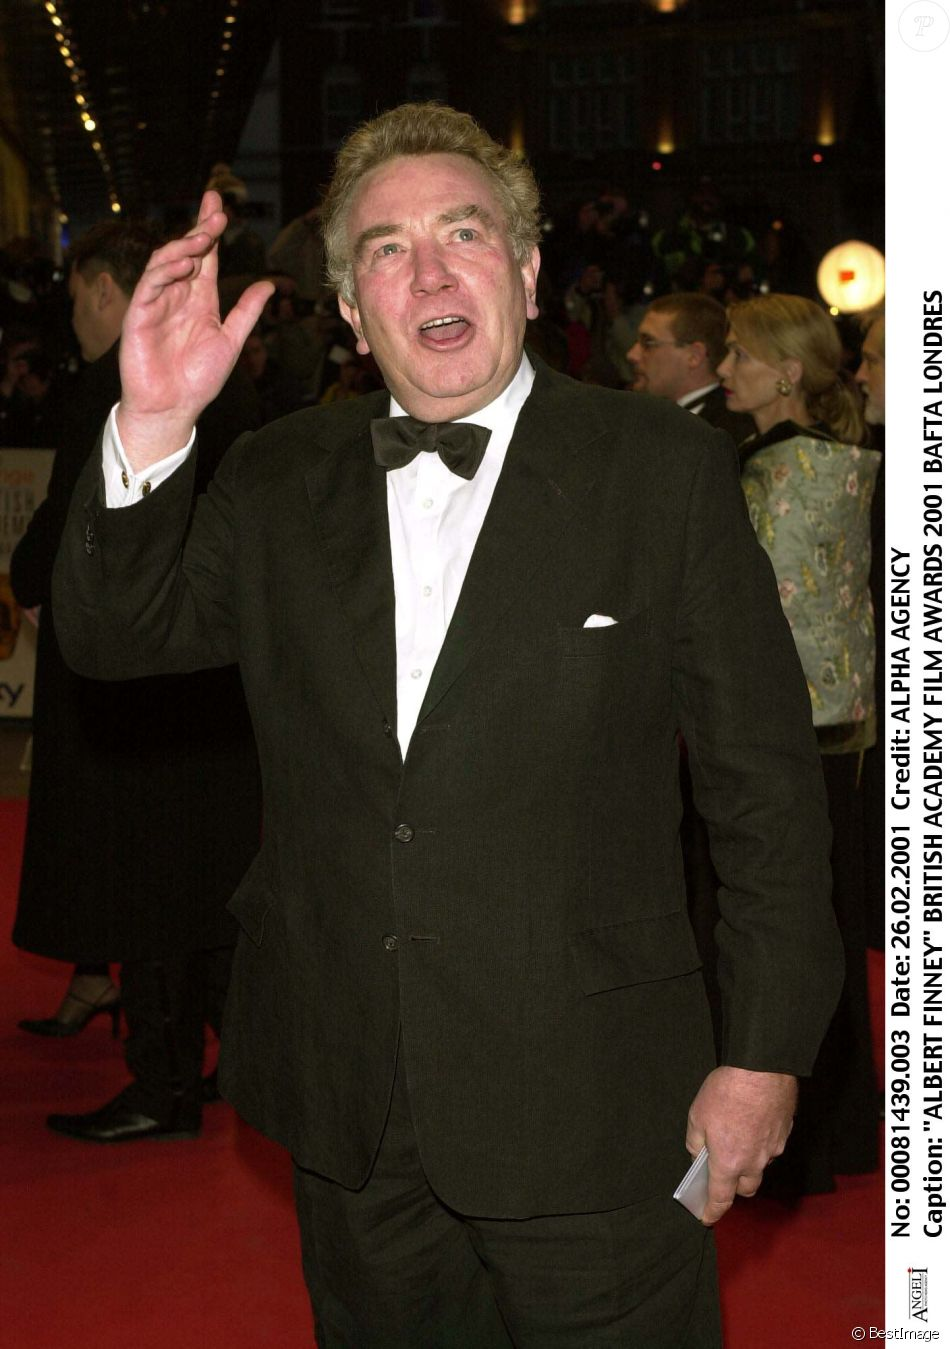 Albert Finney - BAFTA Awards en 2001 à Londres